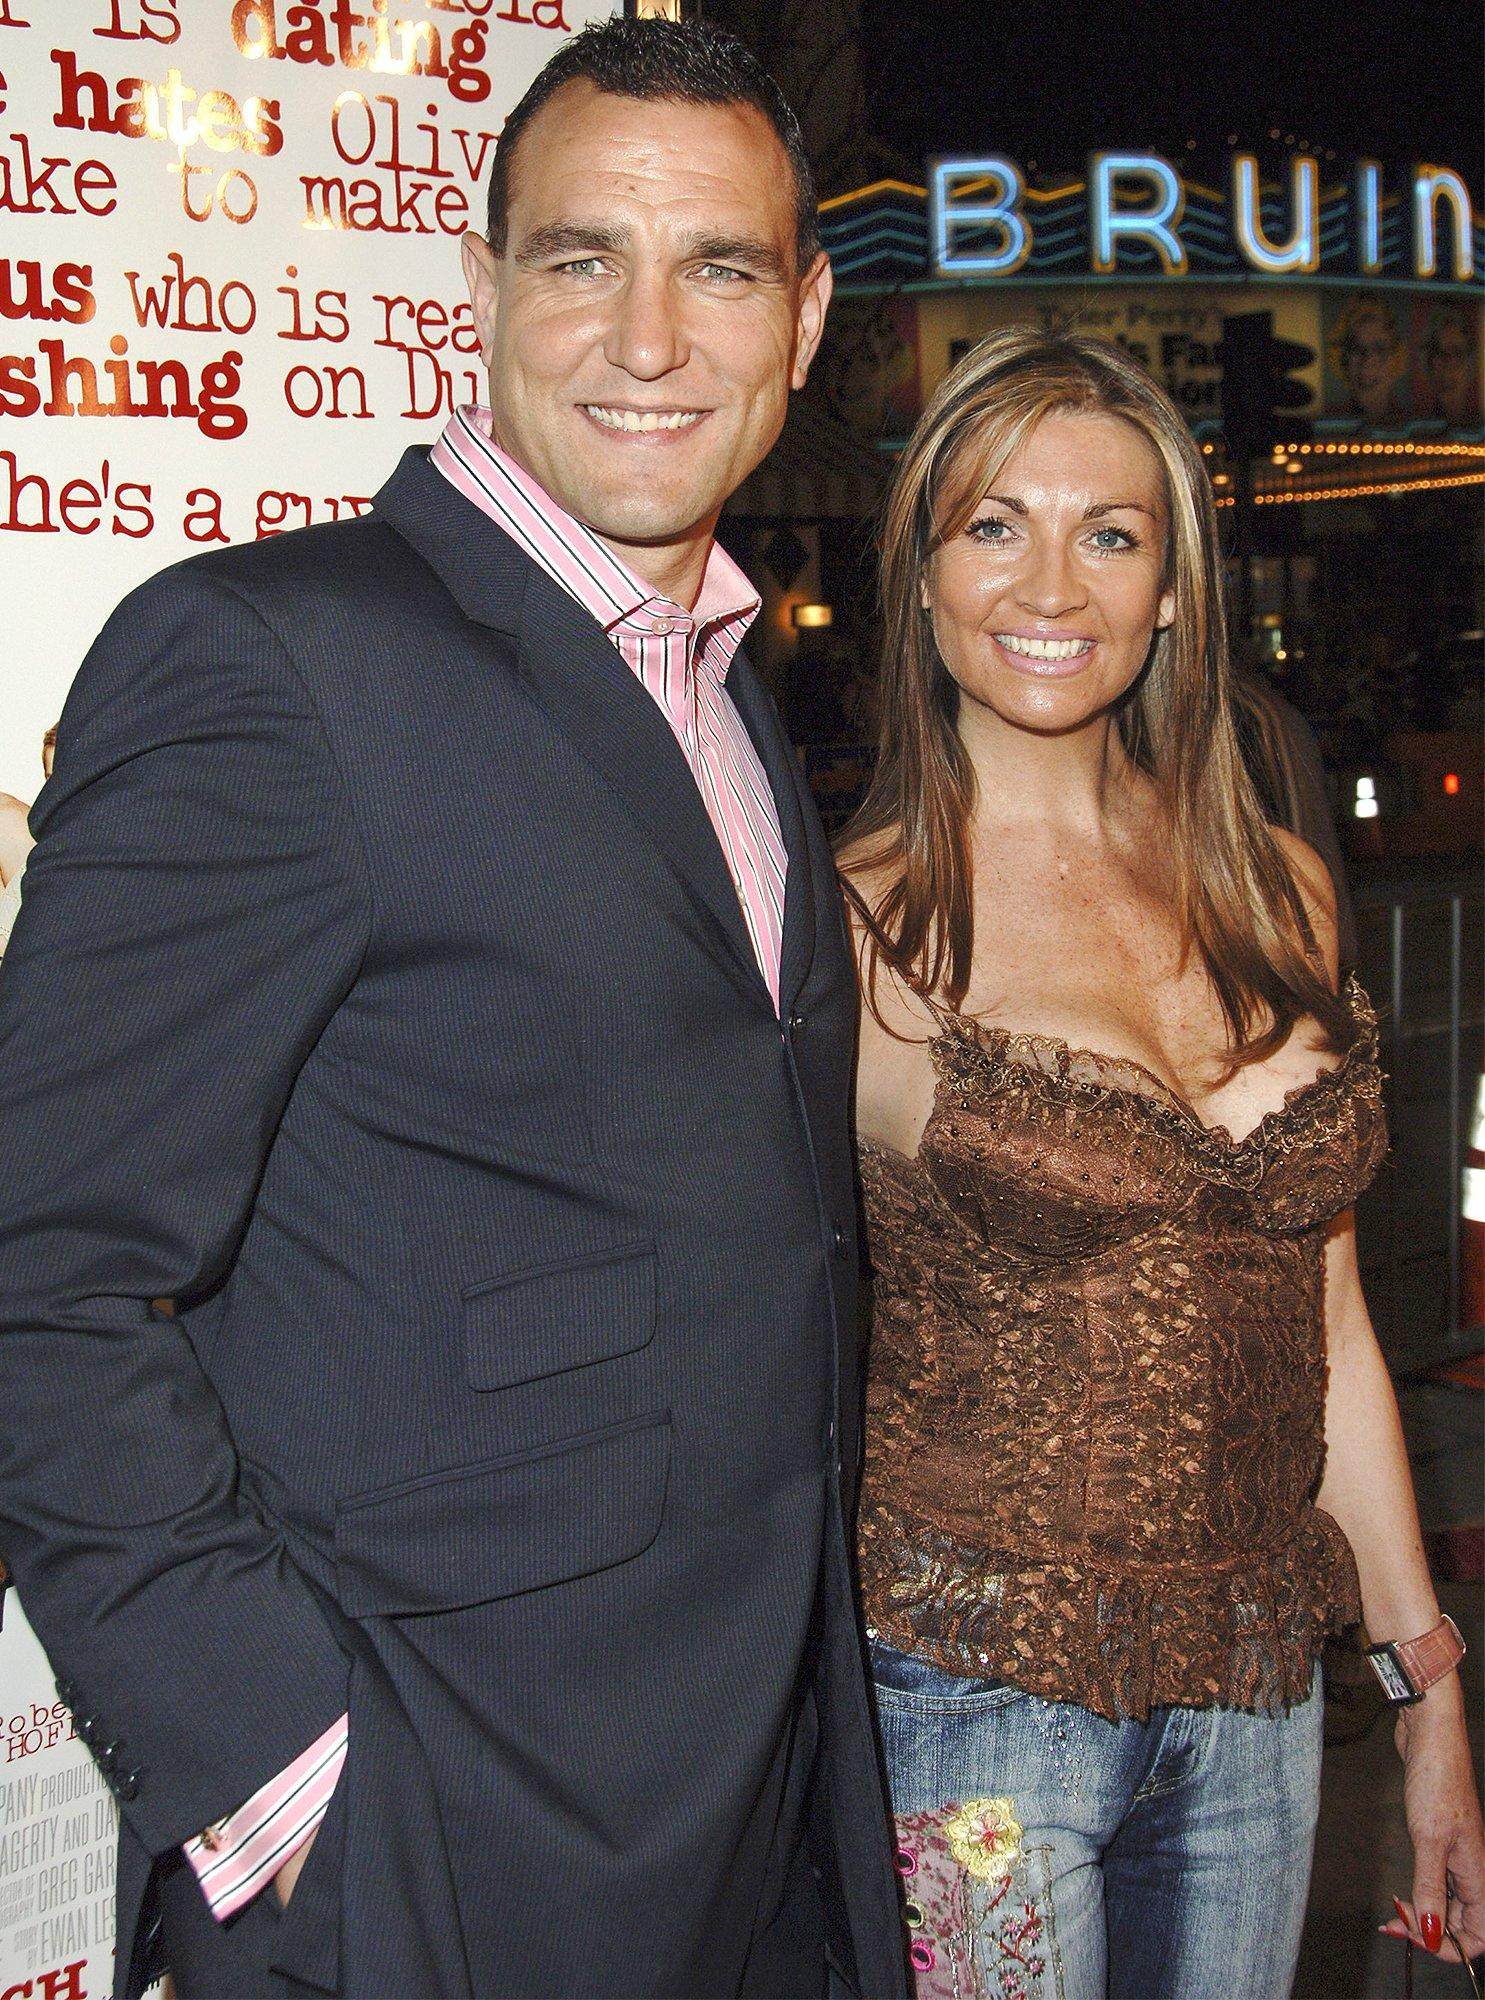 Actor Vinnie Jones Wife Tanya 53 Dies Peacefully In Their L A Home